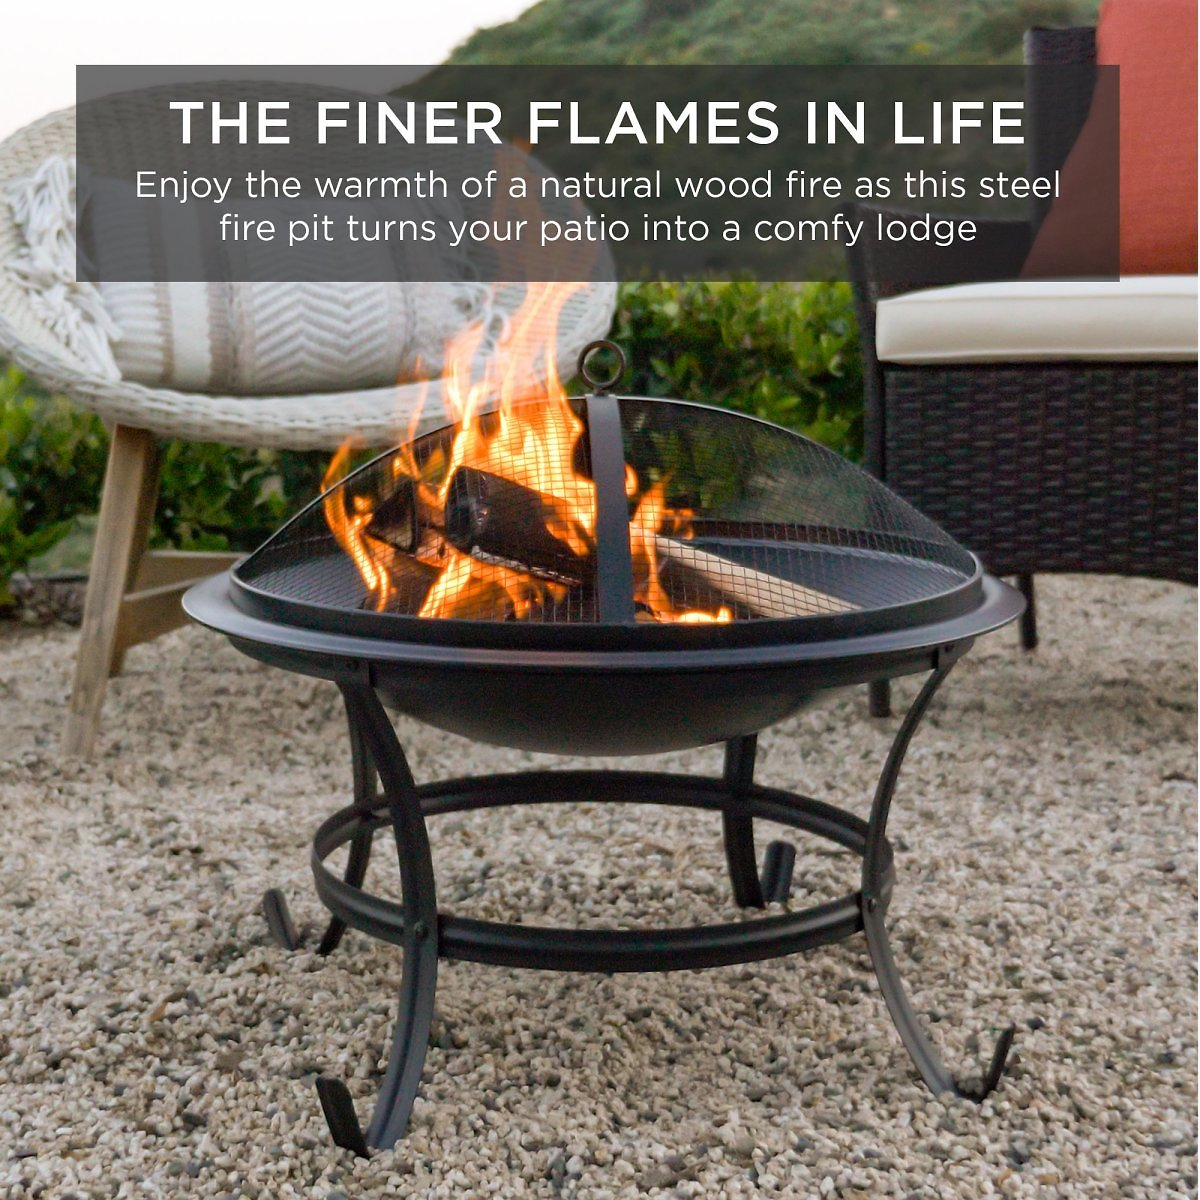 Best-Choice-Products-22in-Steel-Outdoor-Fire-Pit-Bowl-BBQ-Grill-w-Screen-Cover-Log-Grate-Poker-for-Ca